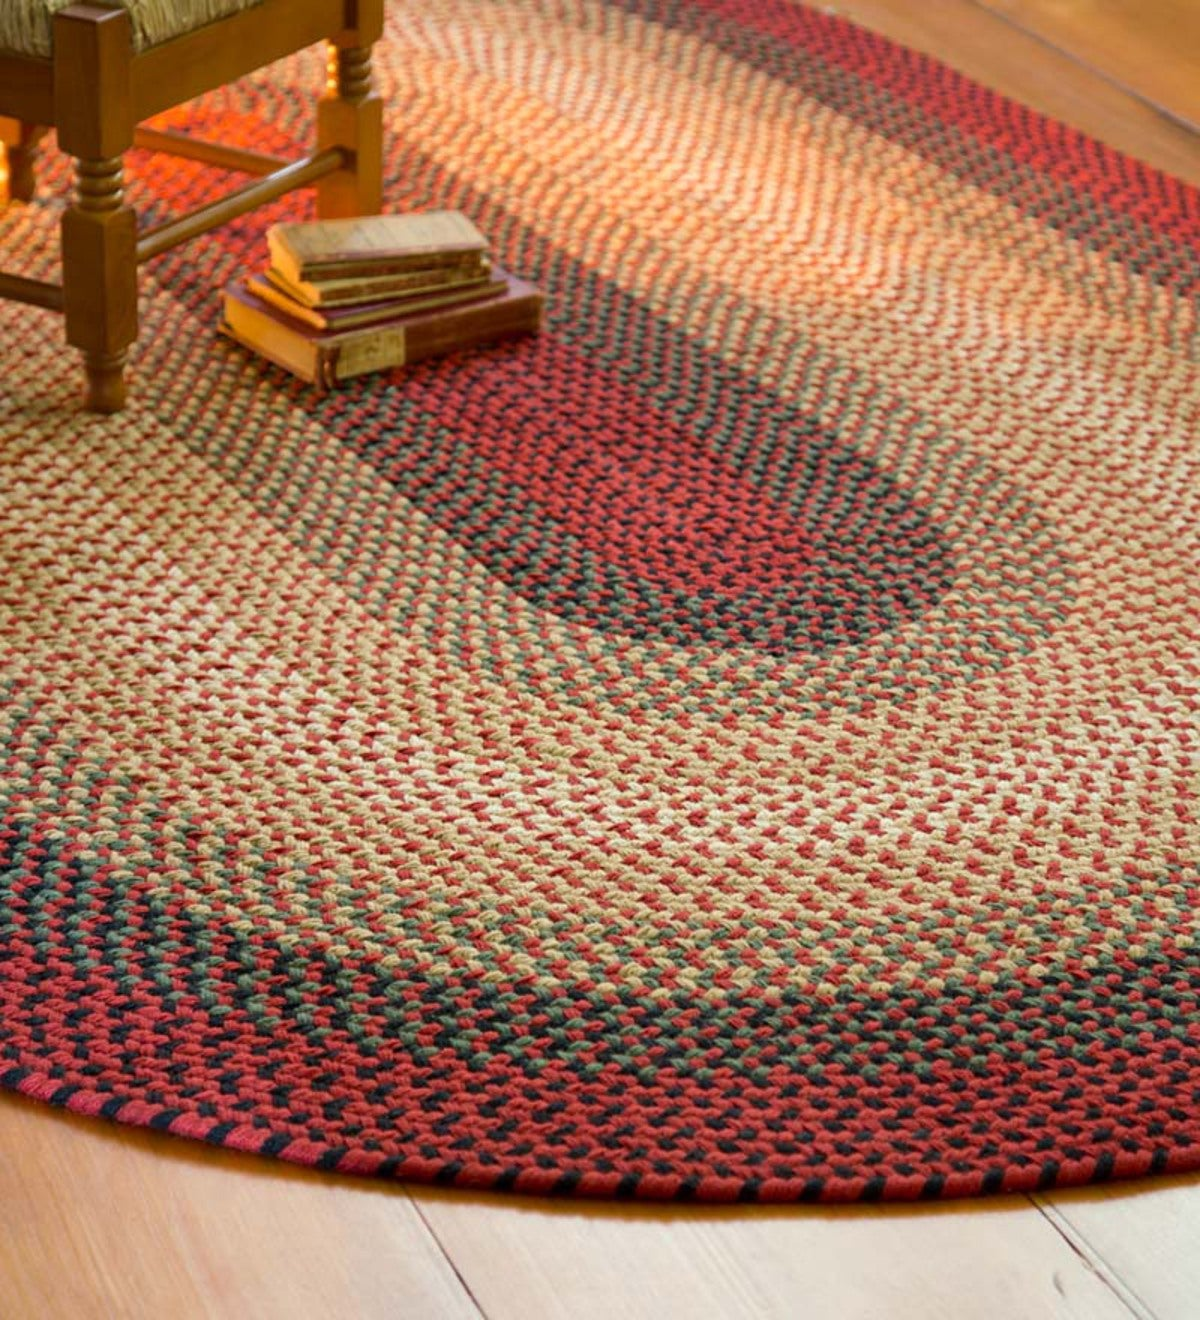 USA-Made Wool Braided Virginia Rug, 2' x 3'